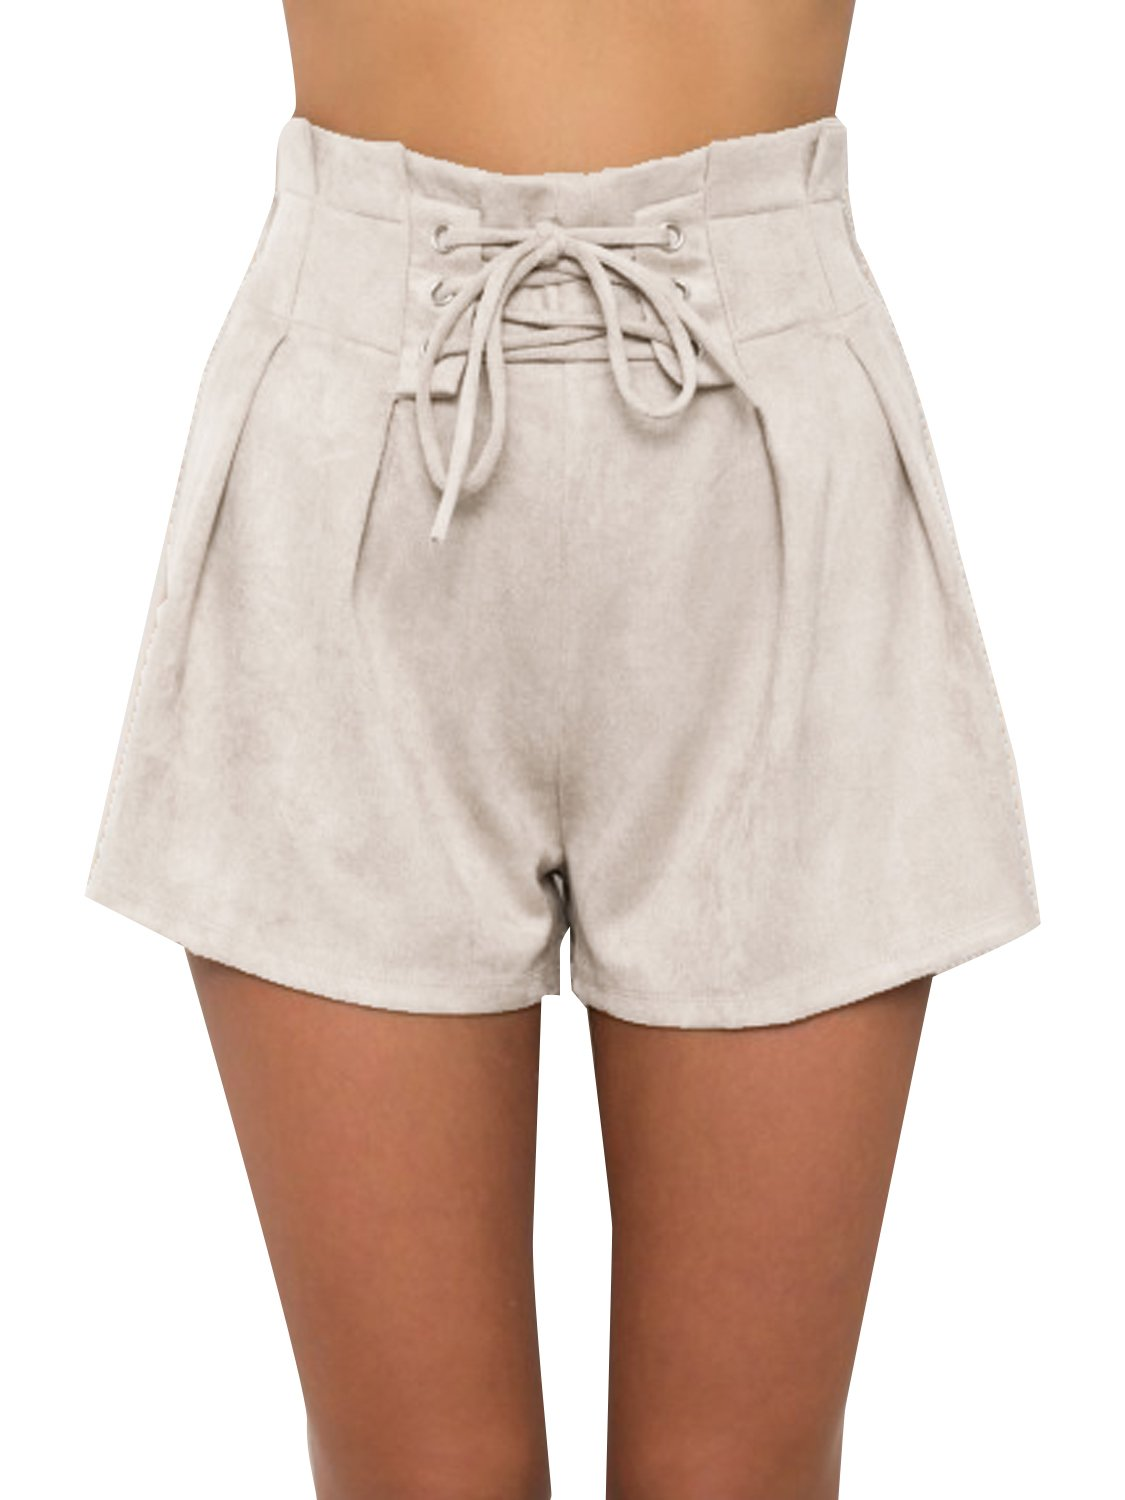 Simplee Women's Winter Casual Loose Faux Suede High Waisted Lace up Shorts